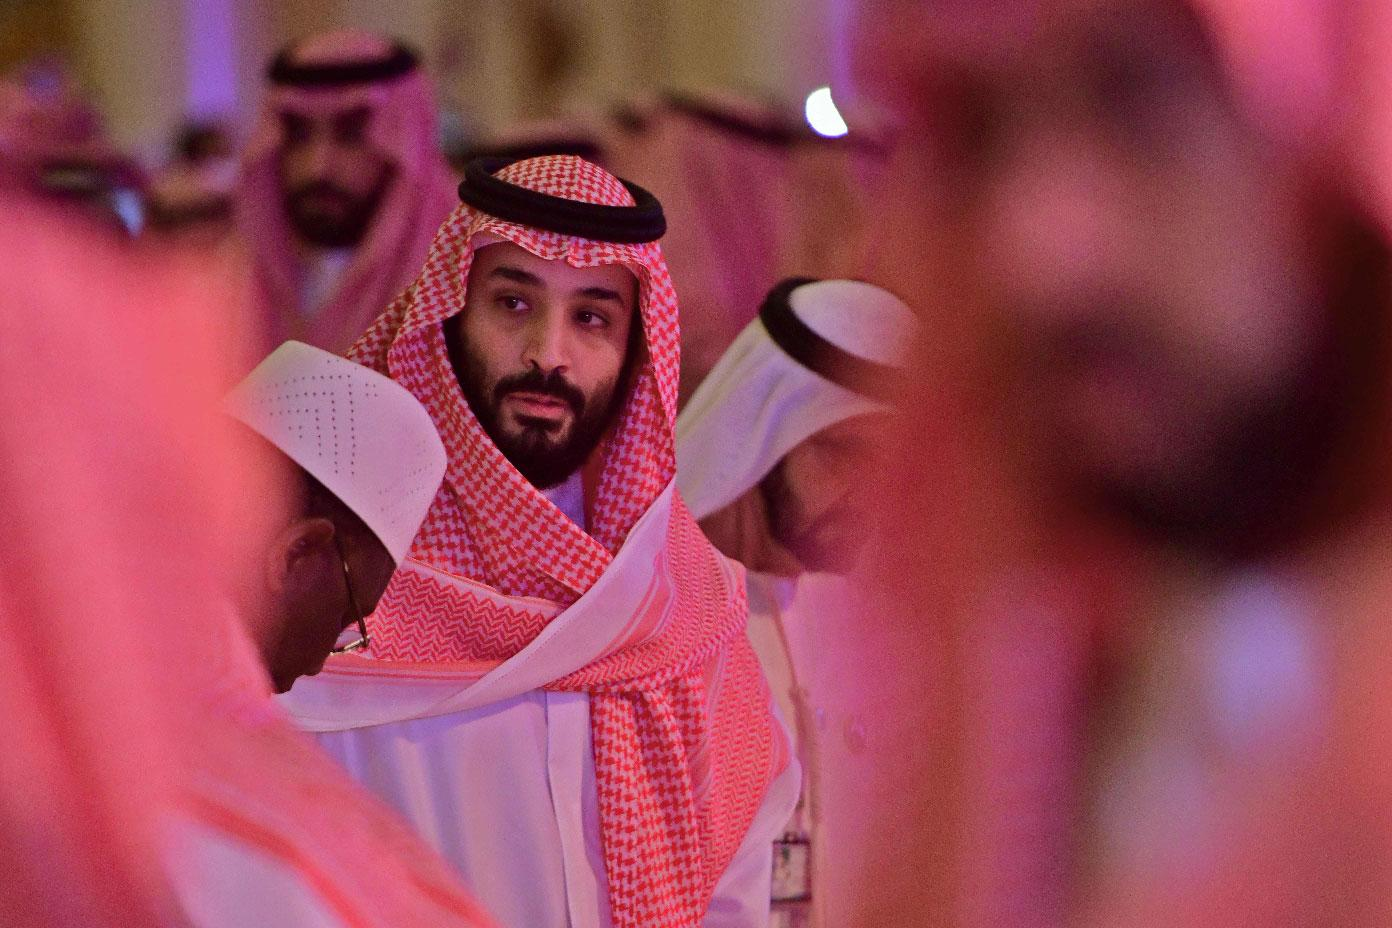 Saudi Crown Prince Mohammed bin Salman arrives at the Future Investment Initiative FII conference in the Saudi capital Riyadh on October 24, 2018.